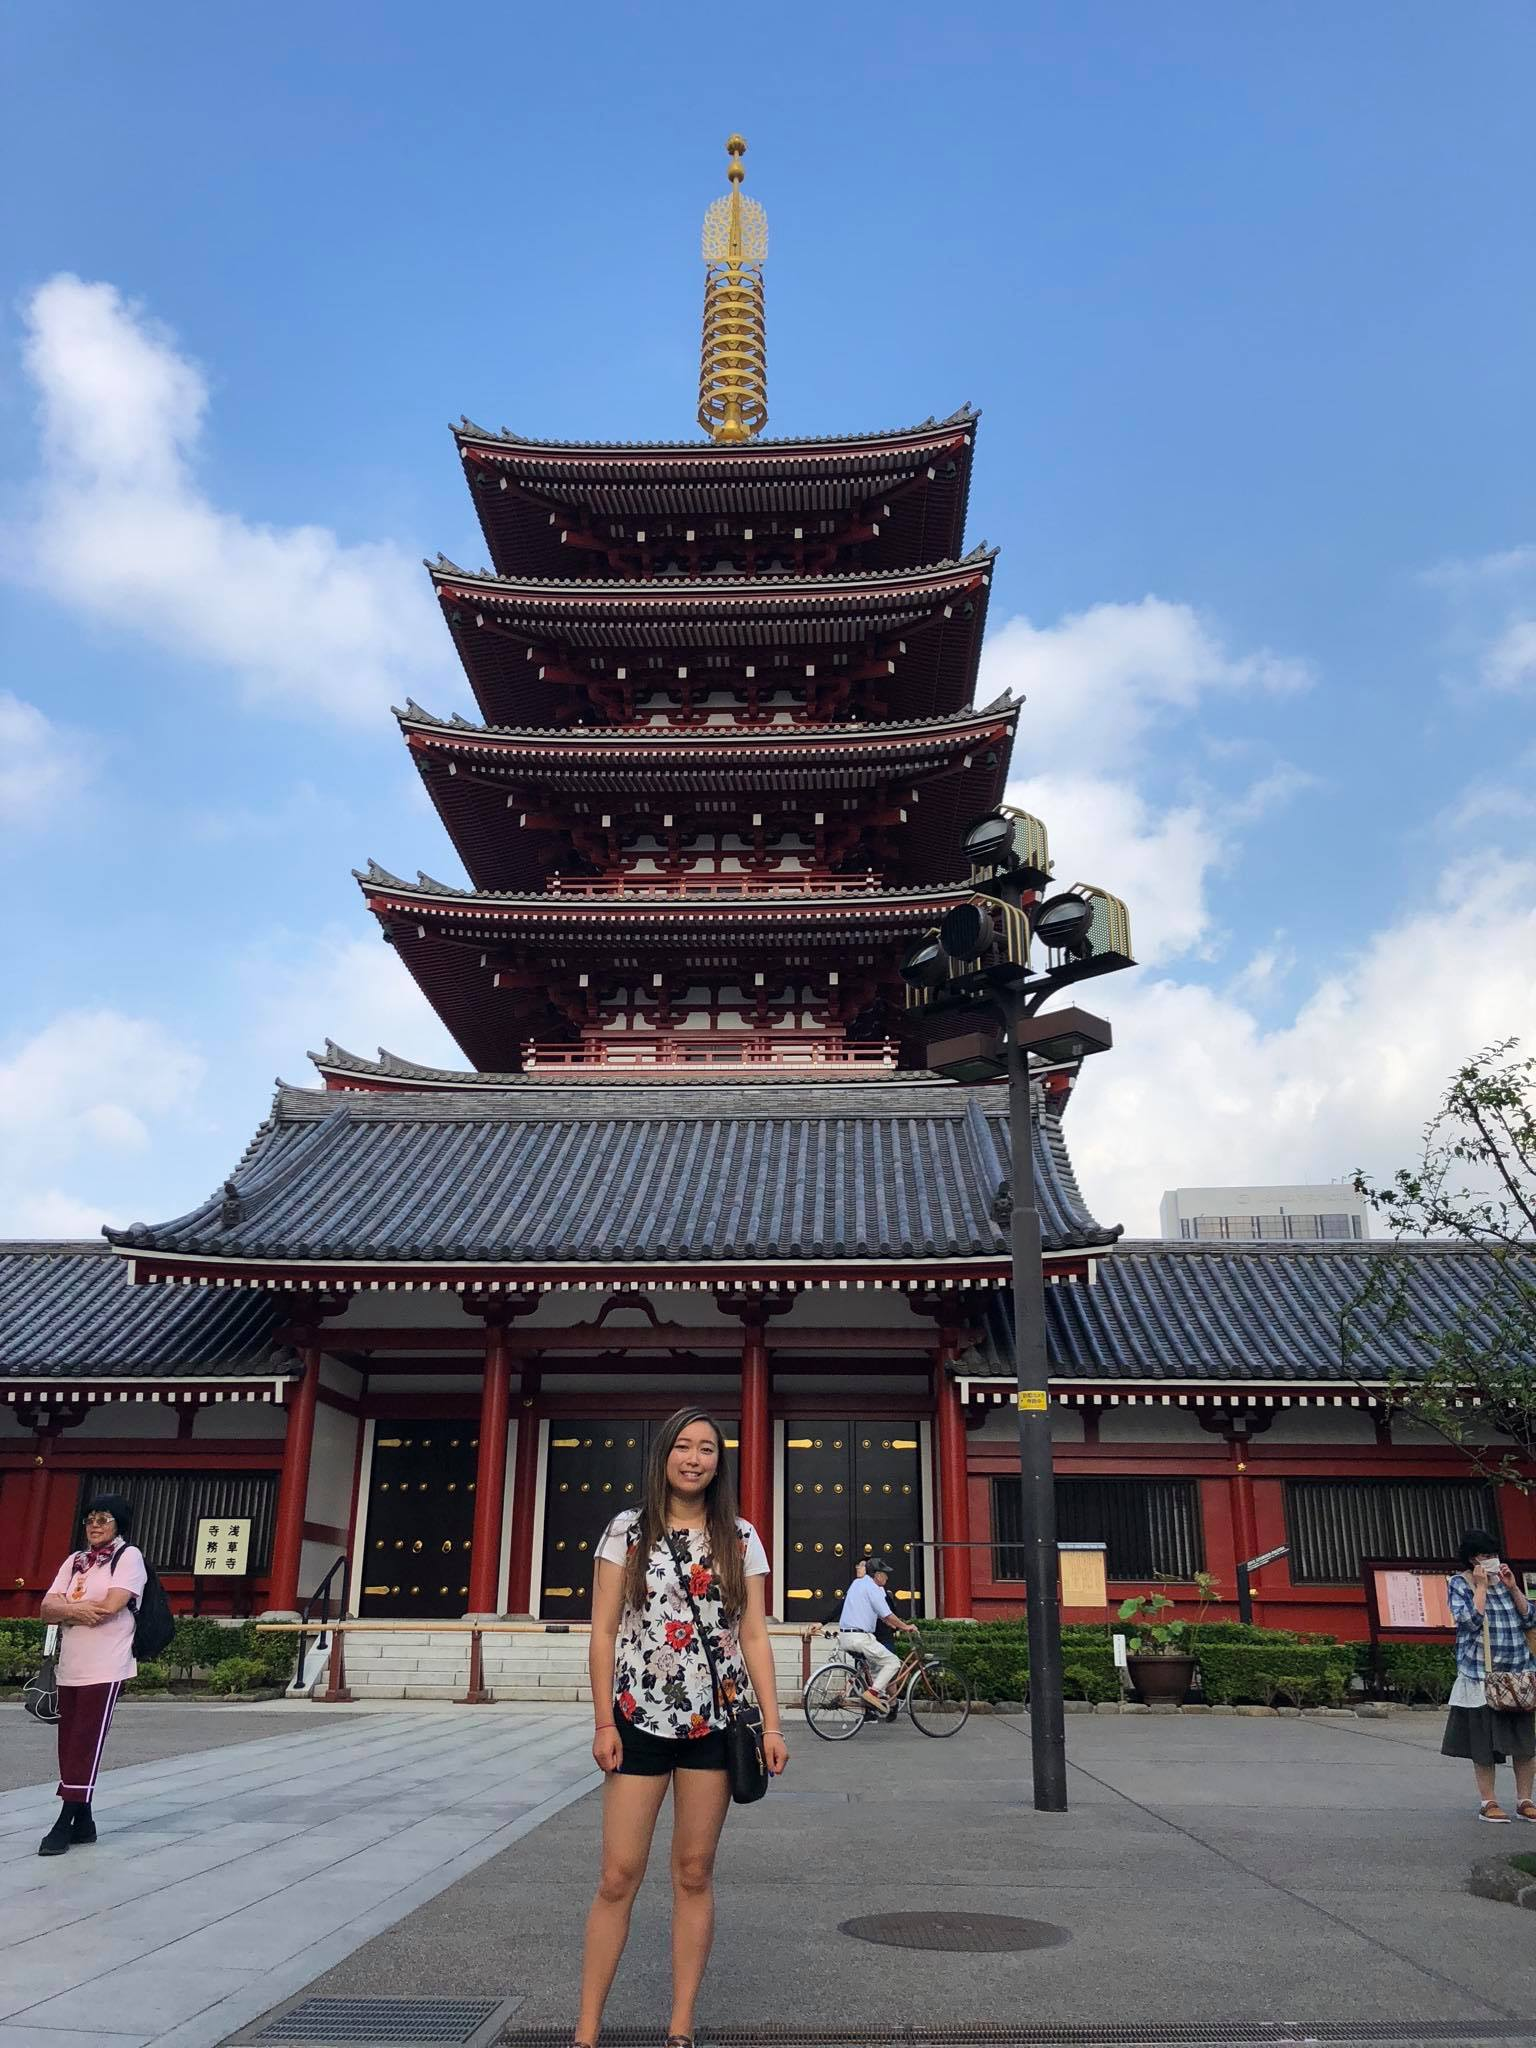 - Me standing out as a foreigner with my shorts in Tokyo.